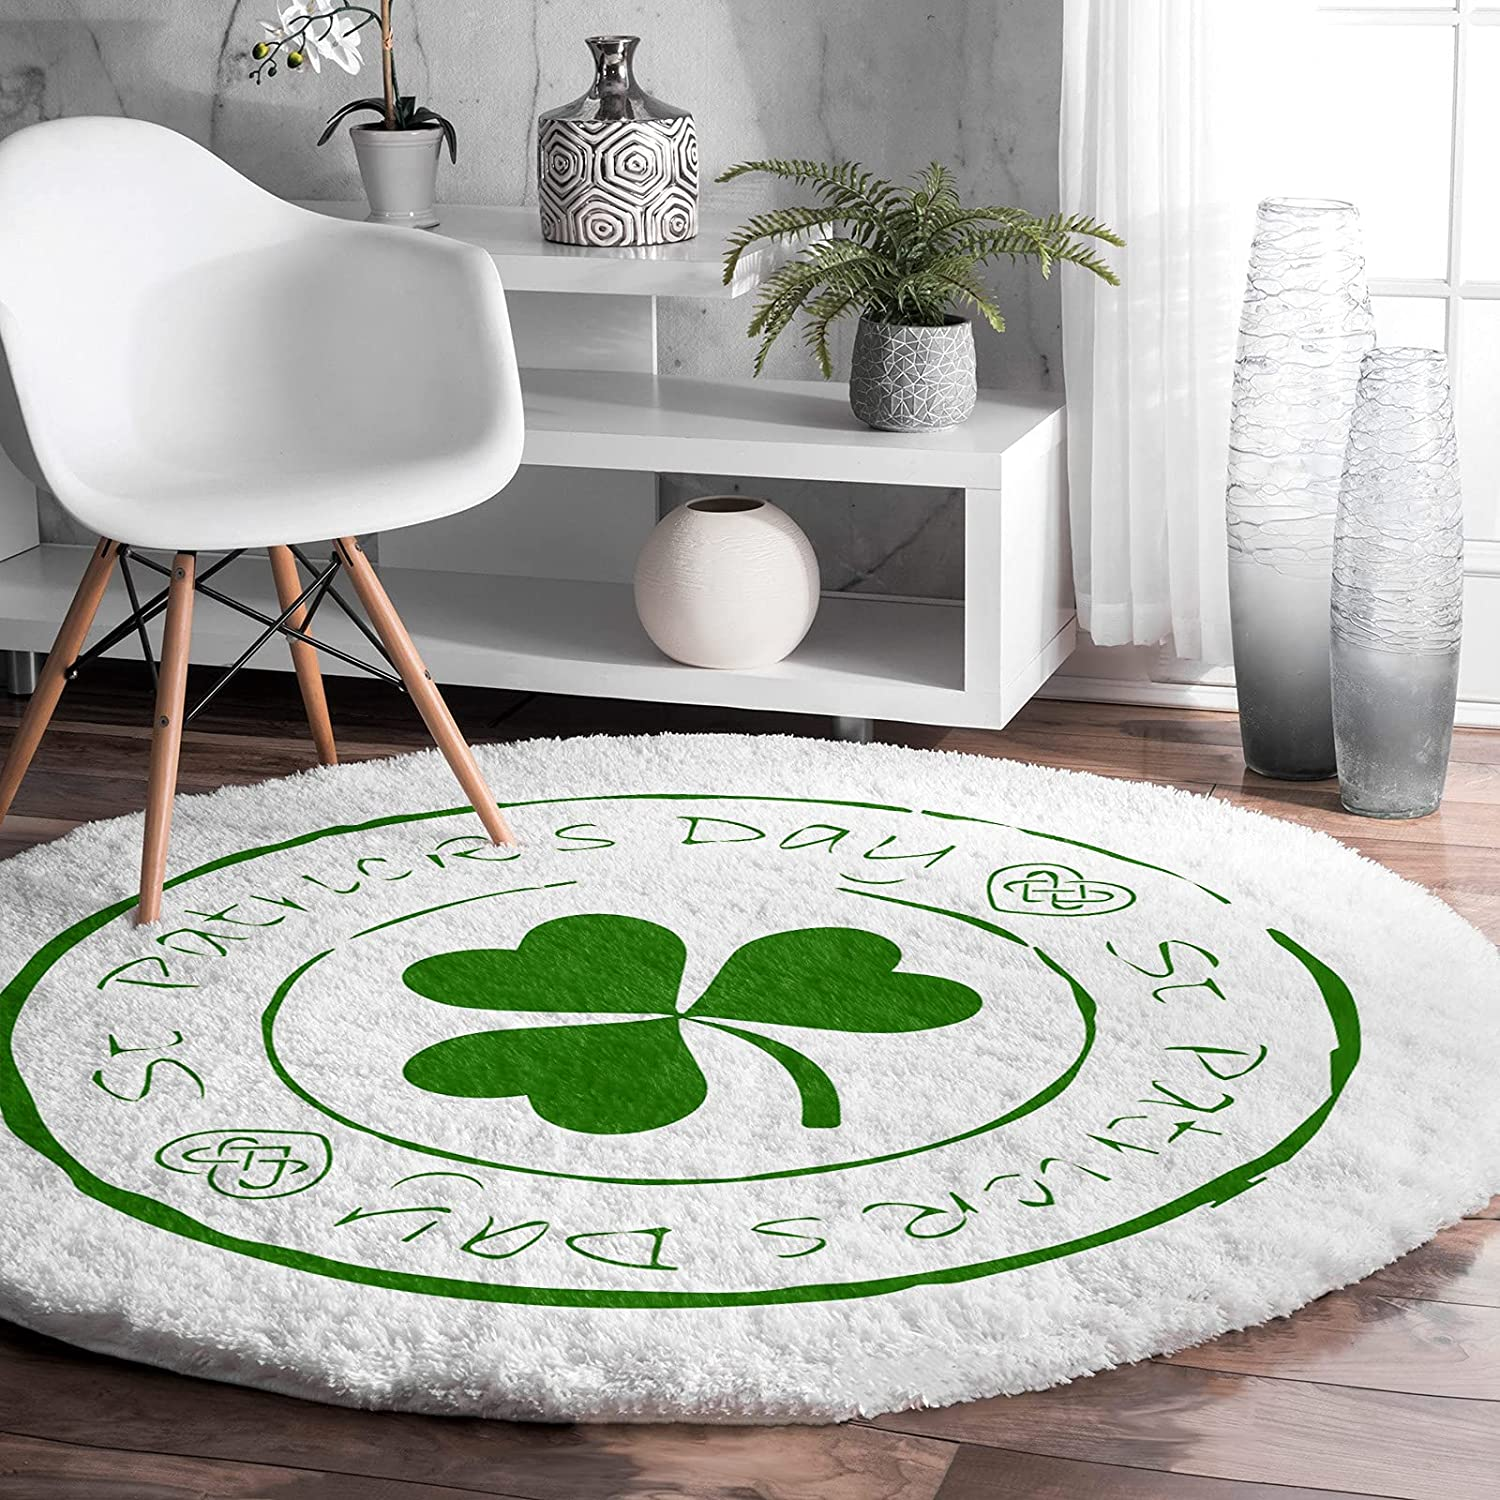 Rocking Giraffee Soft Comfy Area Rugs Room Bedroom S Living Max 74% OFF Indefinitely for